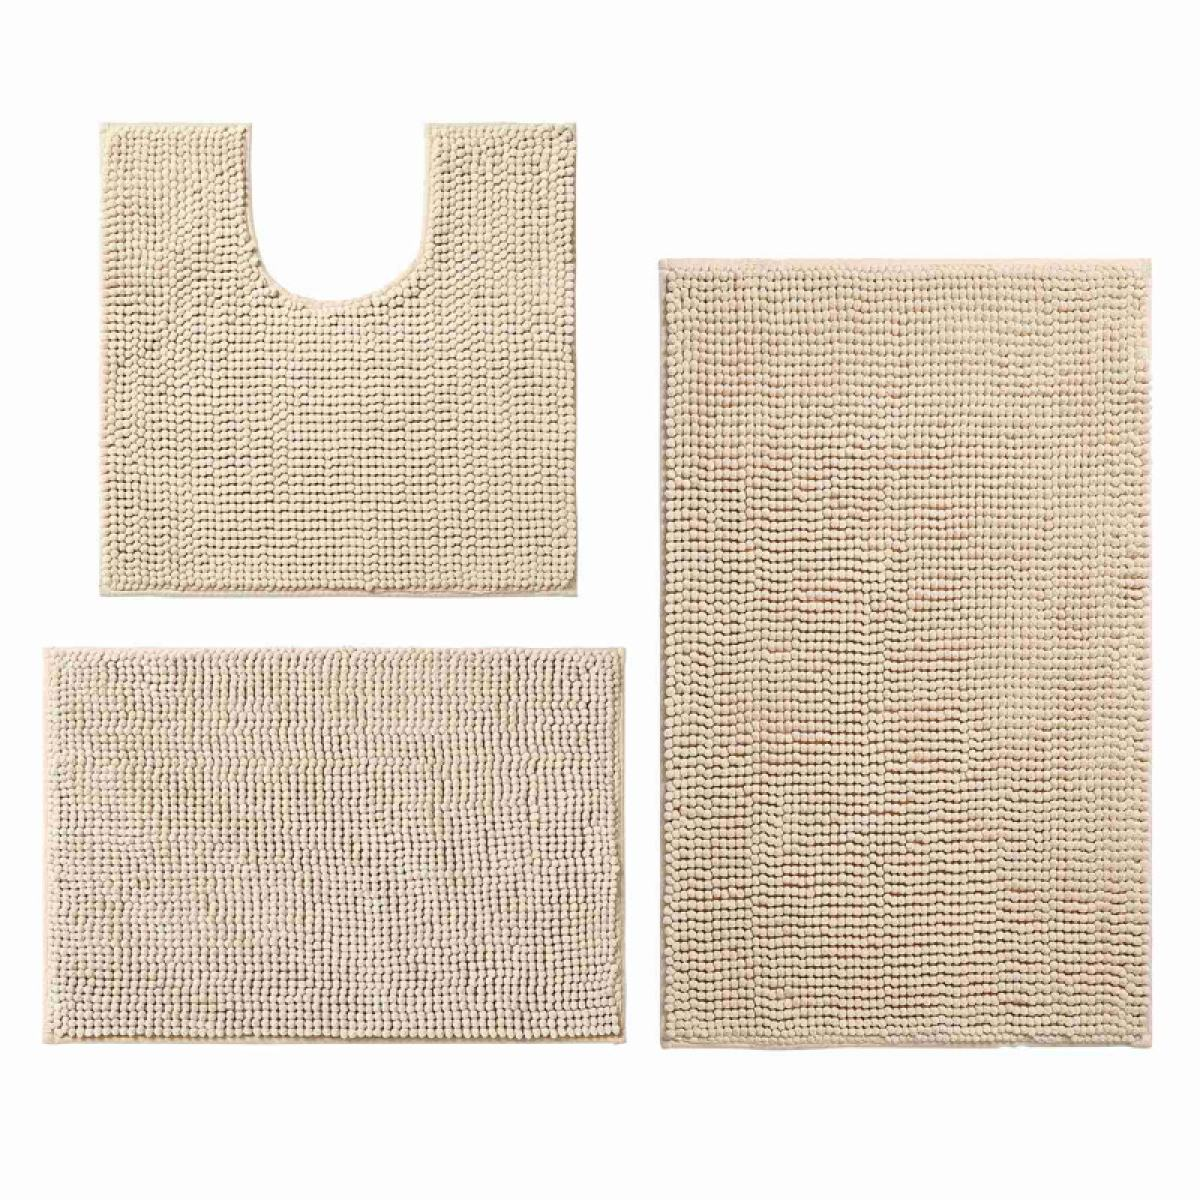 3 Pieces Bathroom Rugs Anti Slip Chenille Bath Rug Super Absorbent Luxury Shaggy Bath Mats Set Machine Washable Lazada